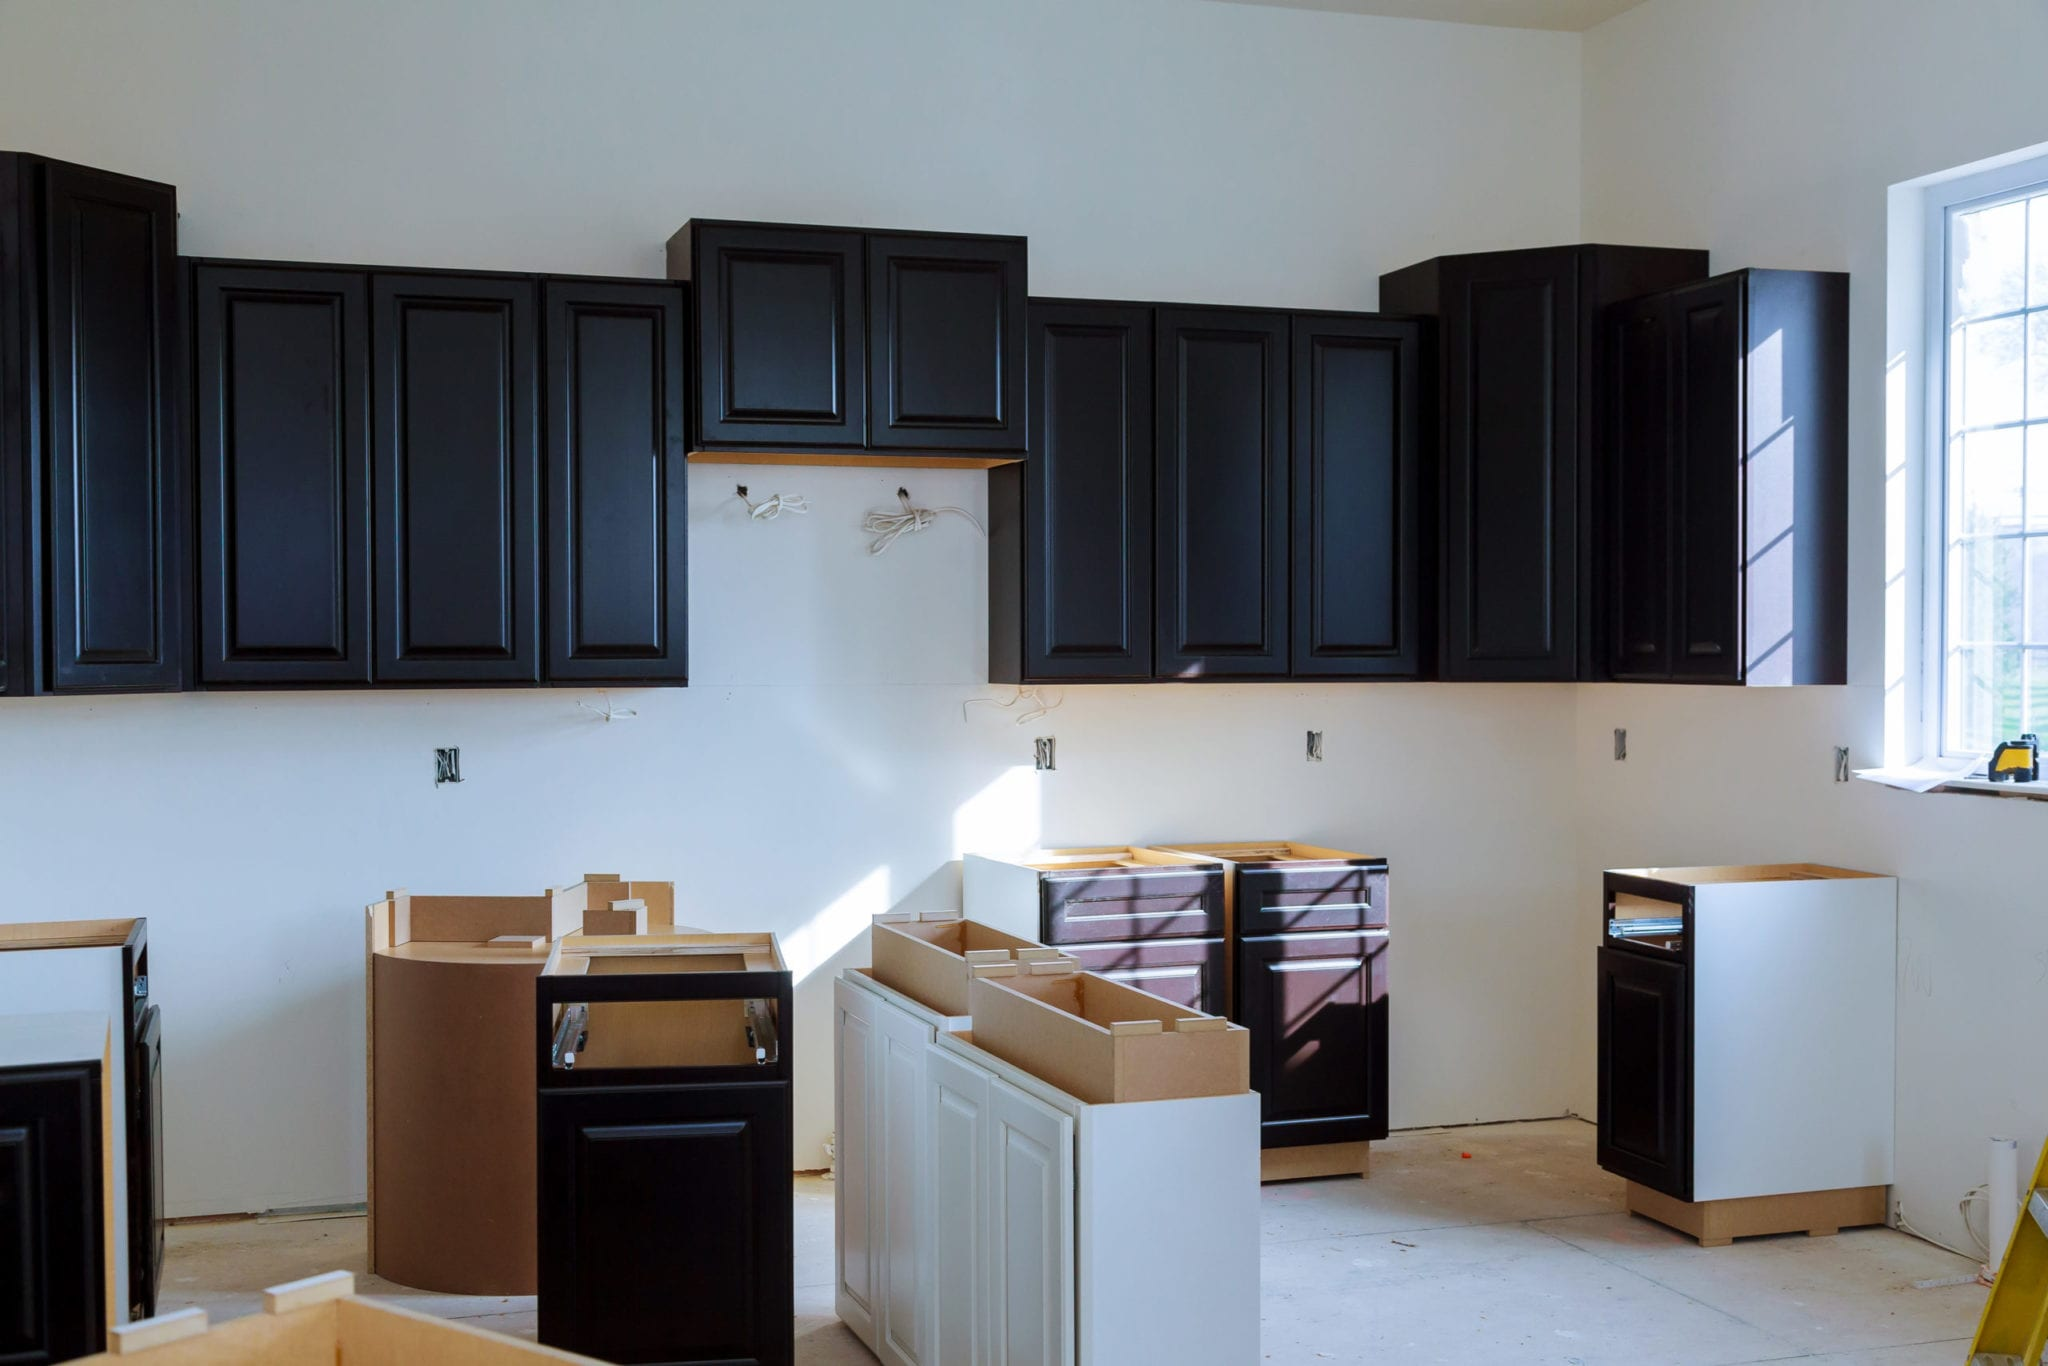 Kitchen cabinets installation Blind corner cabinet, island drawers and counter cabinets installed